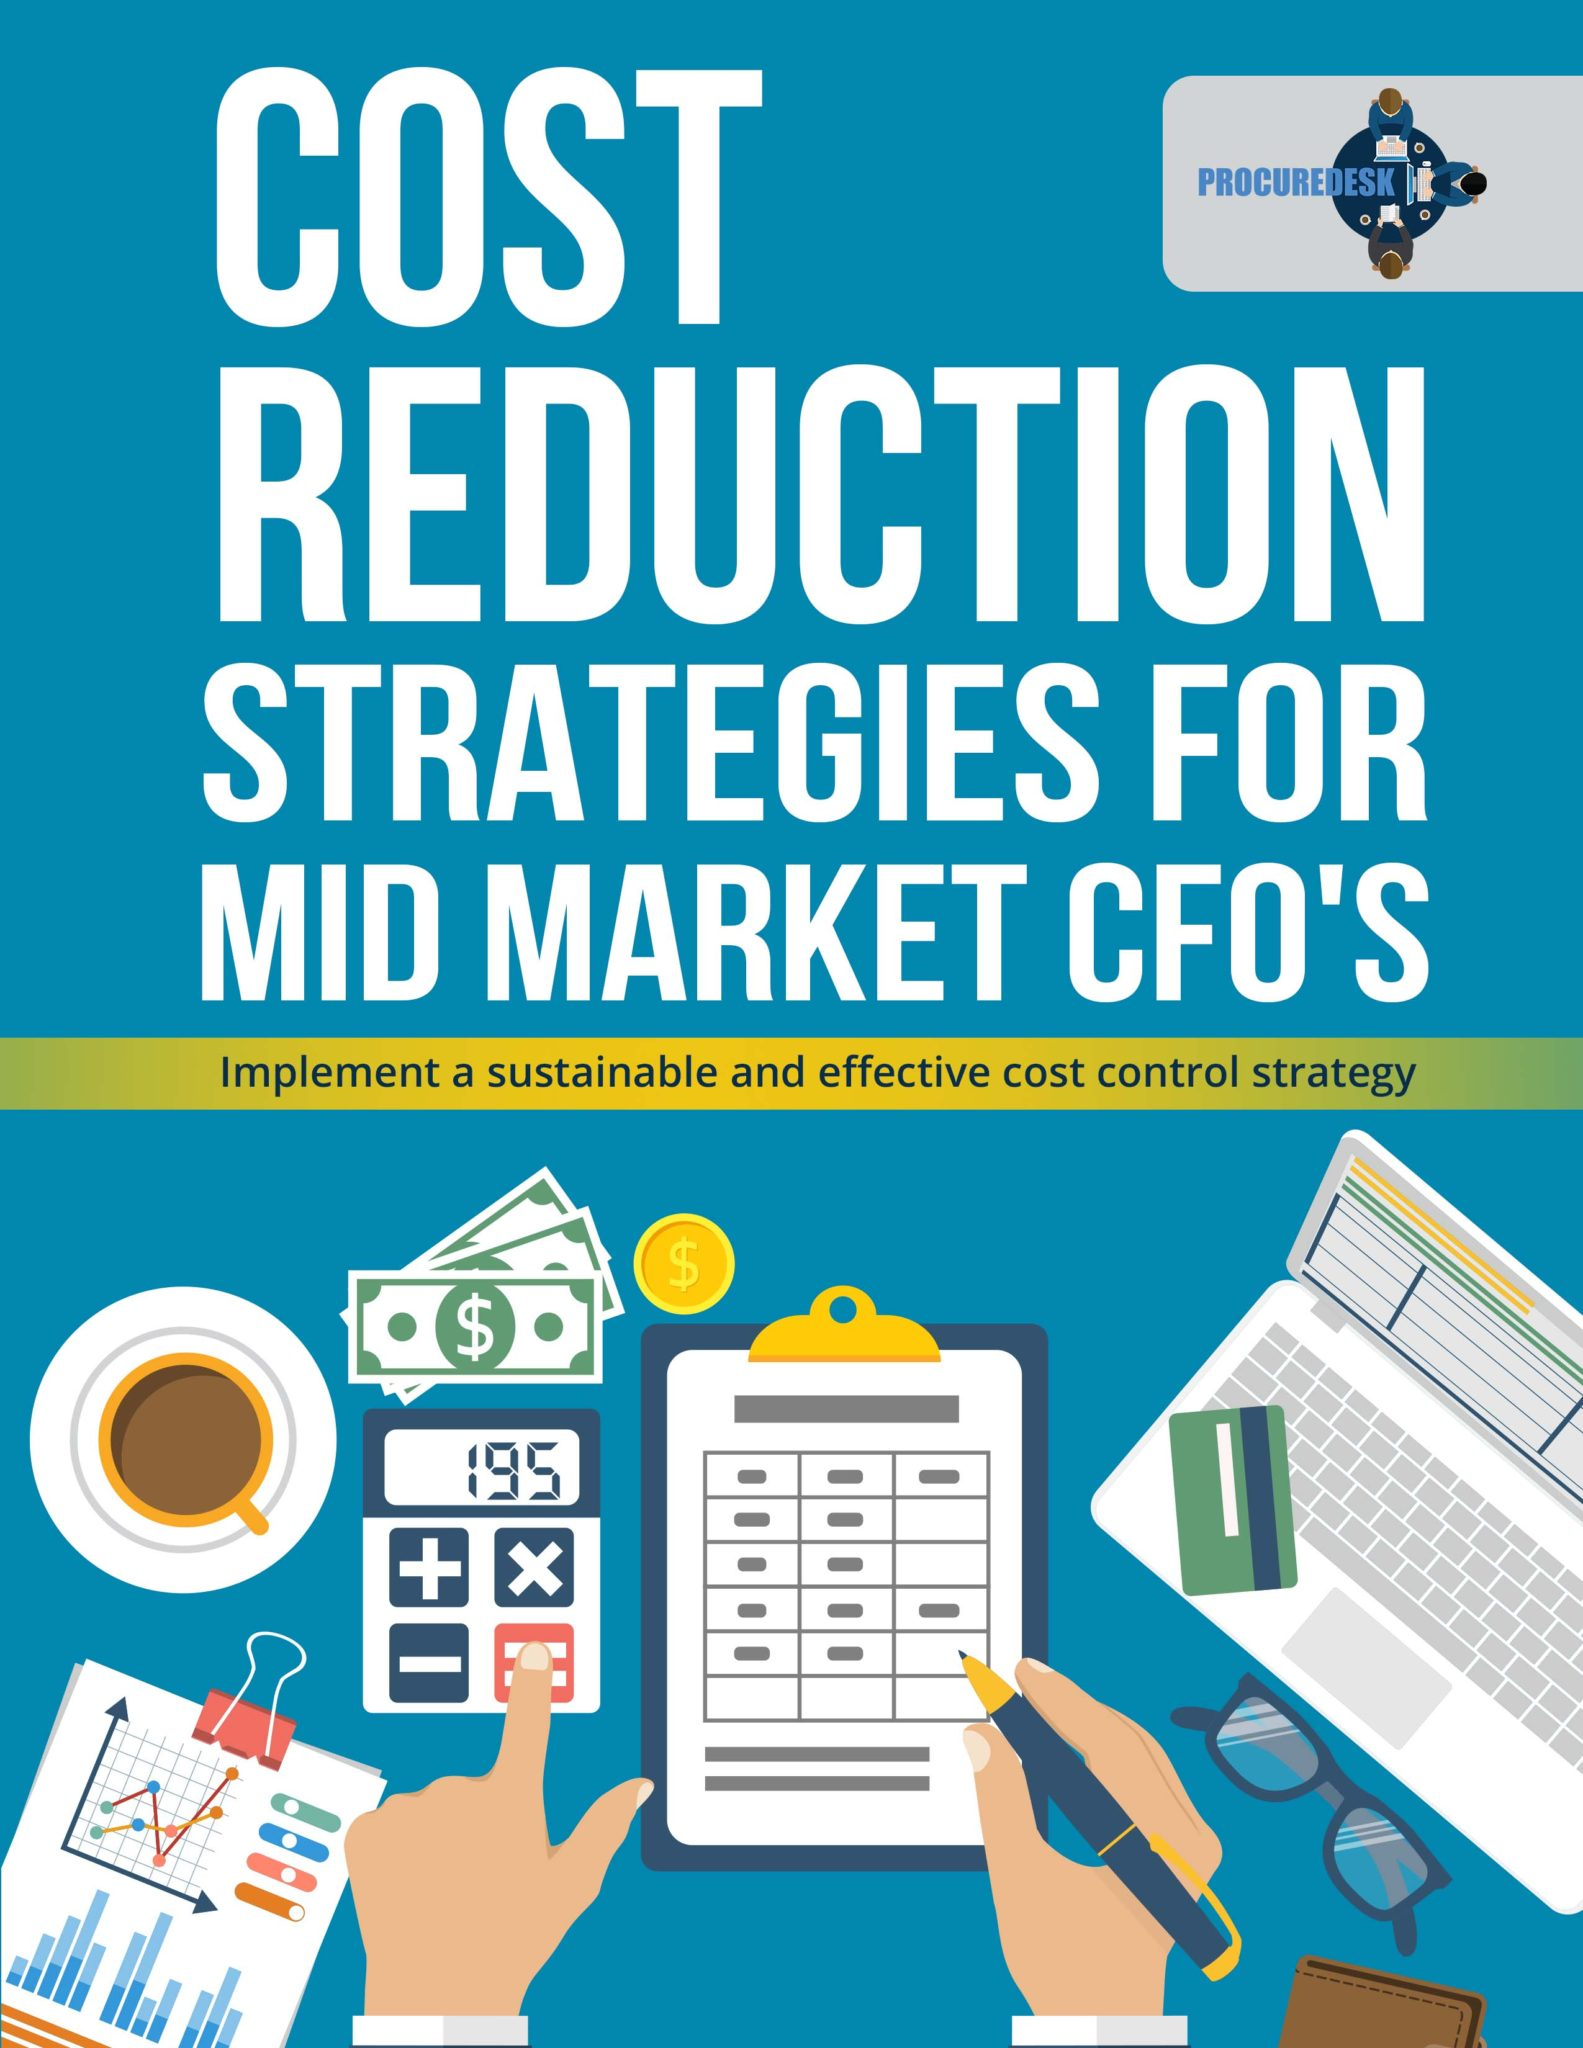 Cost reduction mid market